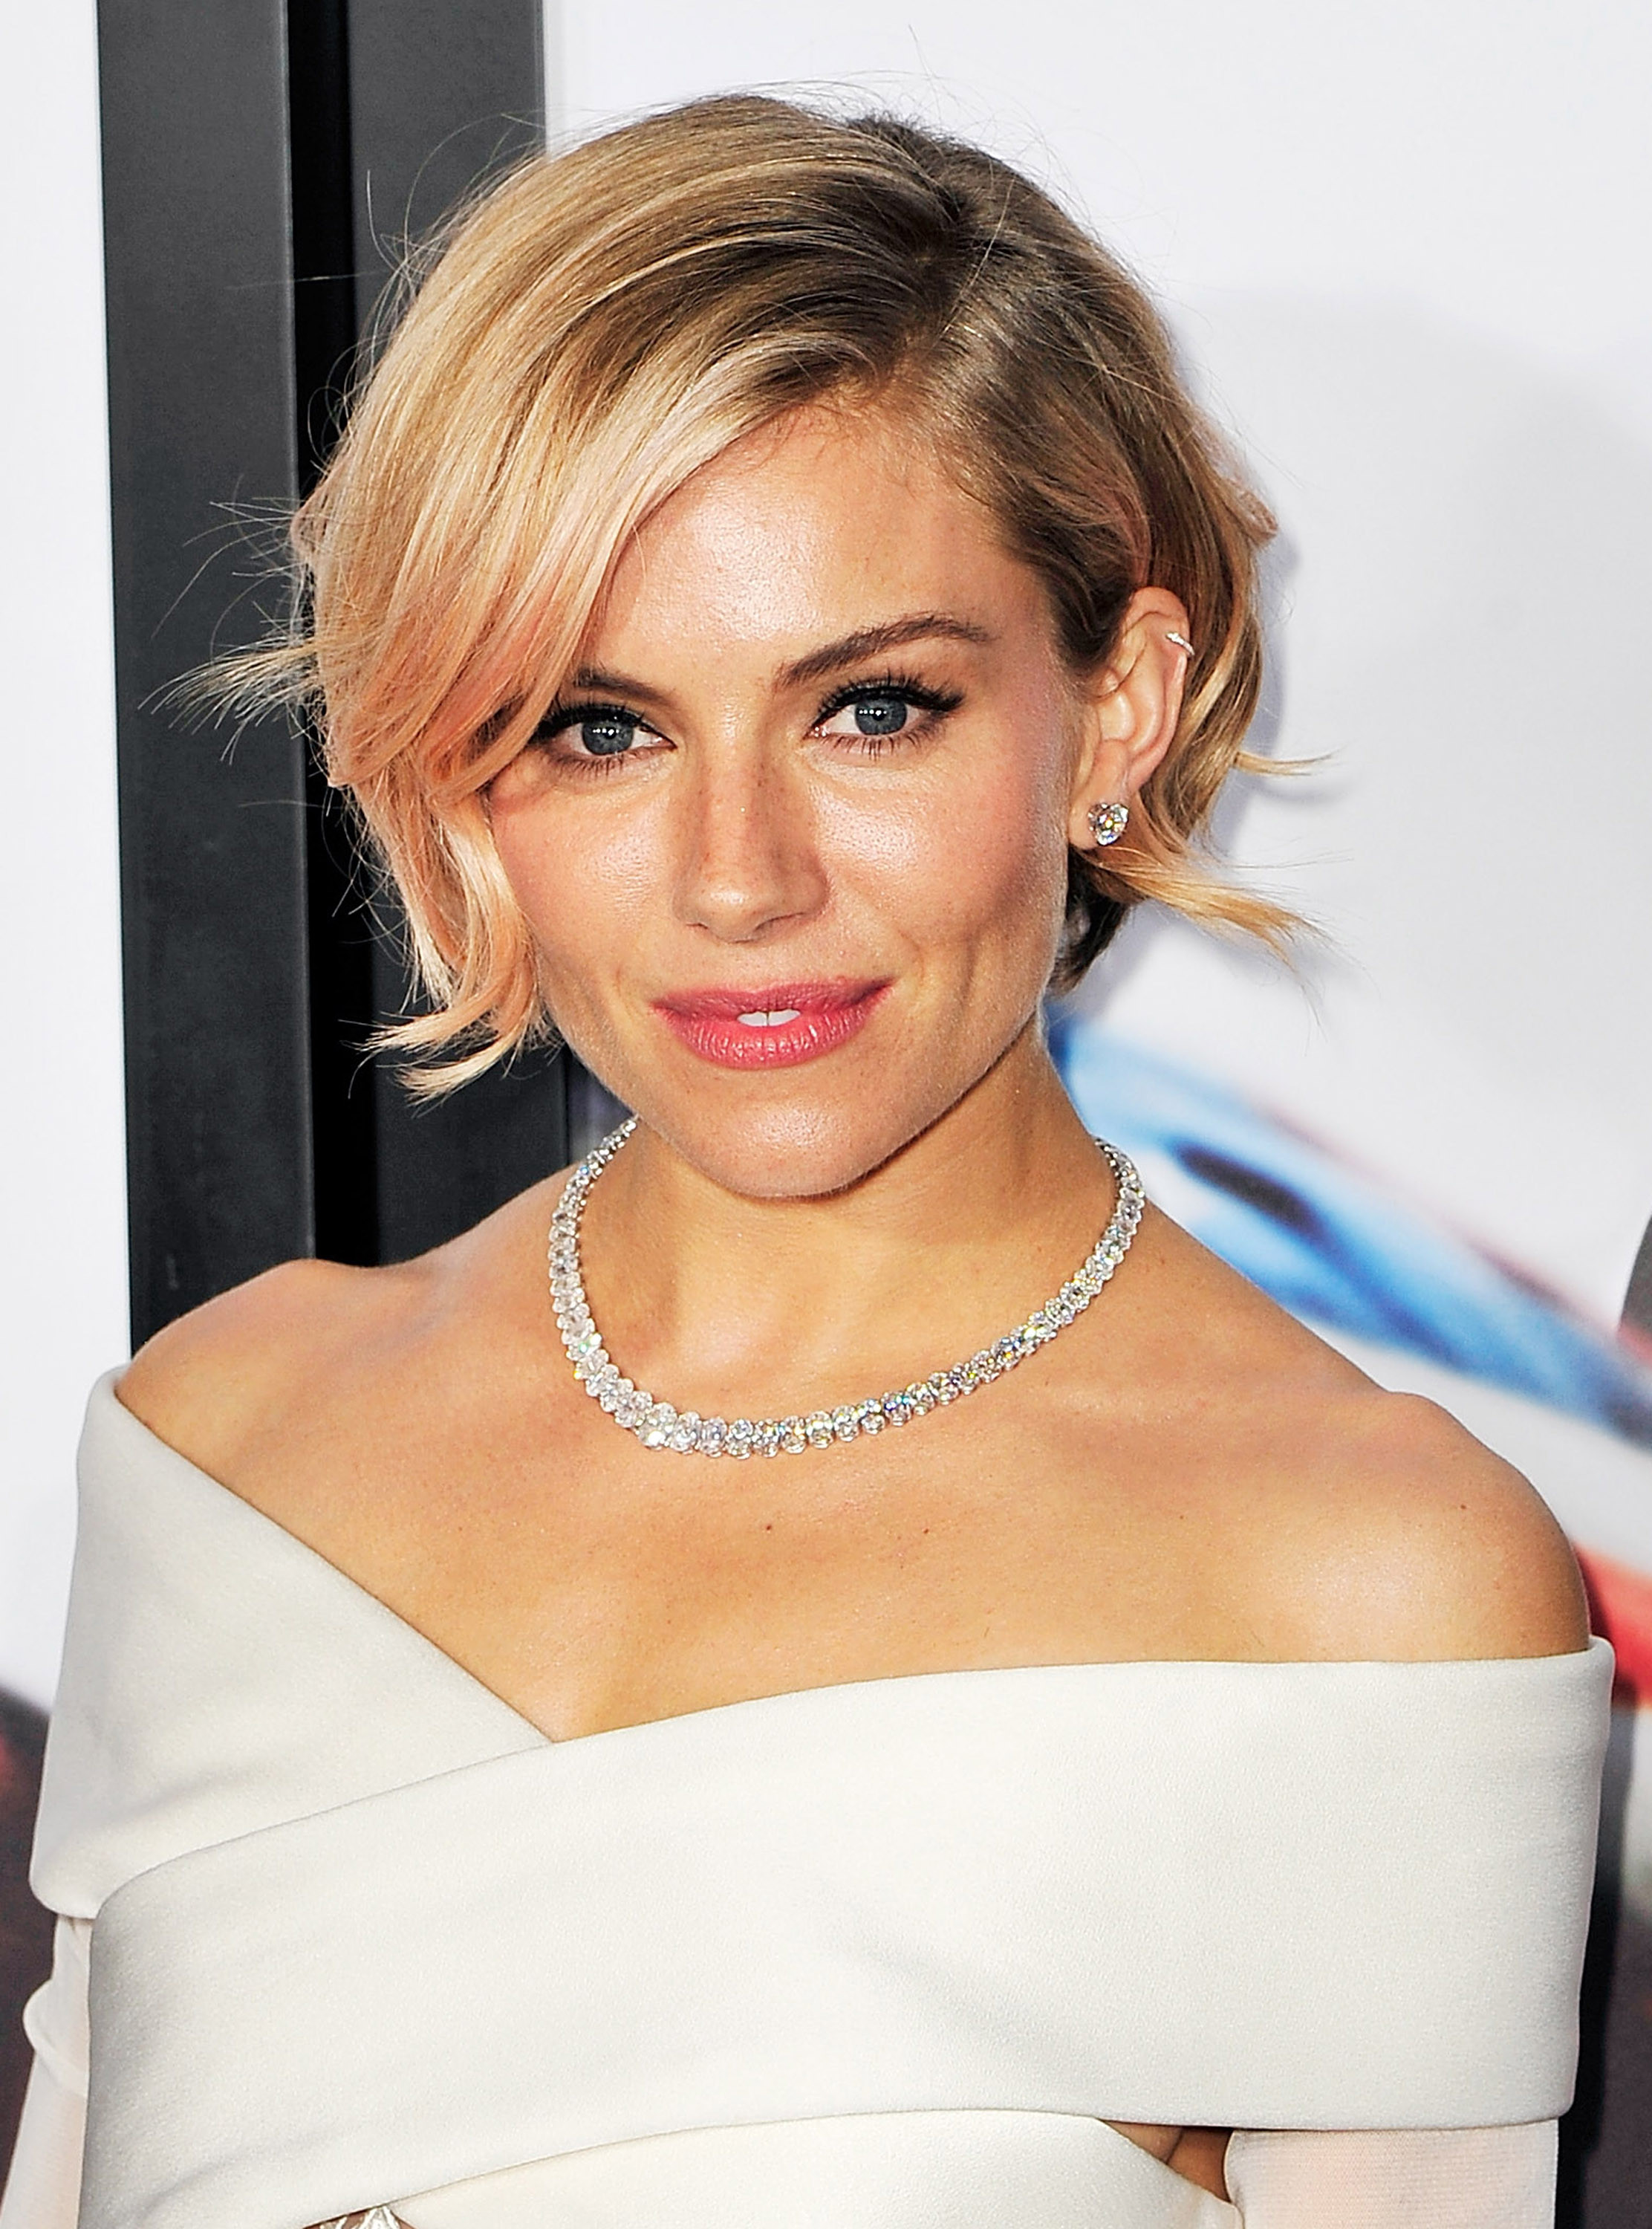 Best ideas about Female Haircuts . Save or Pin 40 Amazing Short Hairstyles For Women Now.